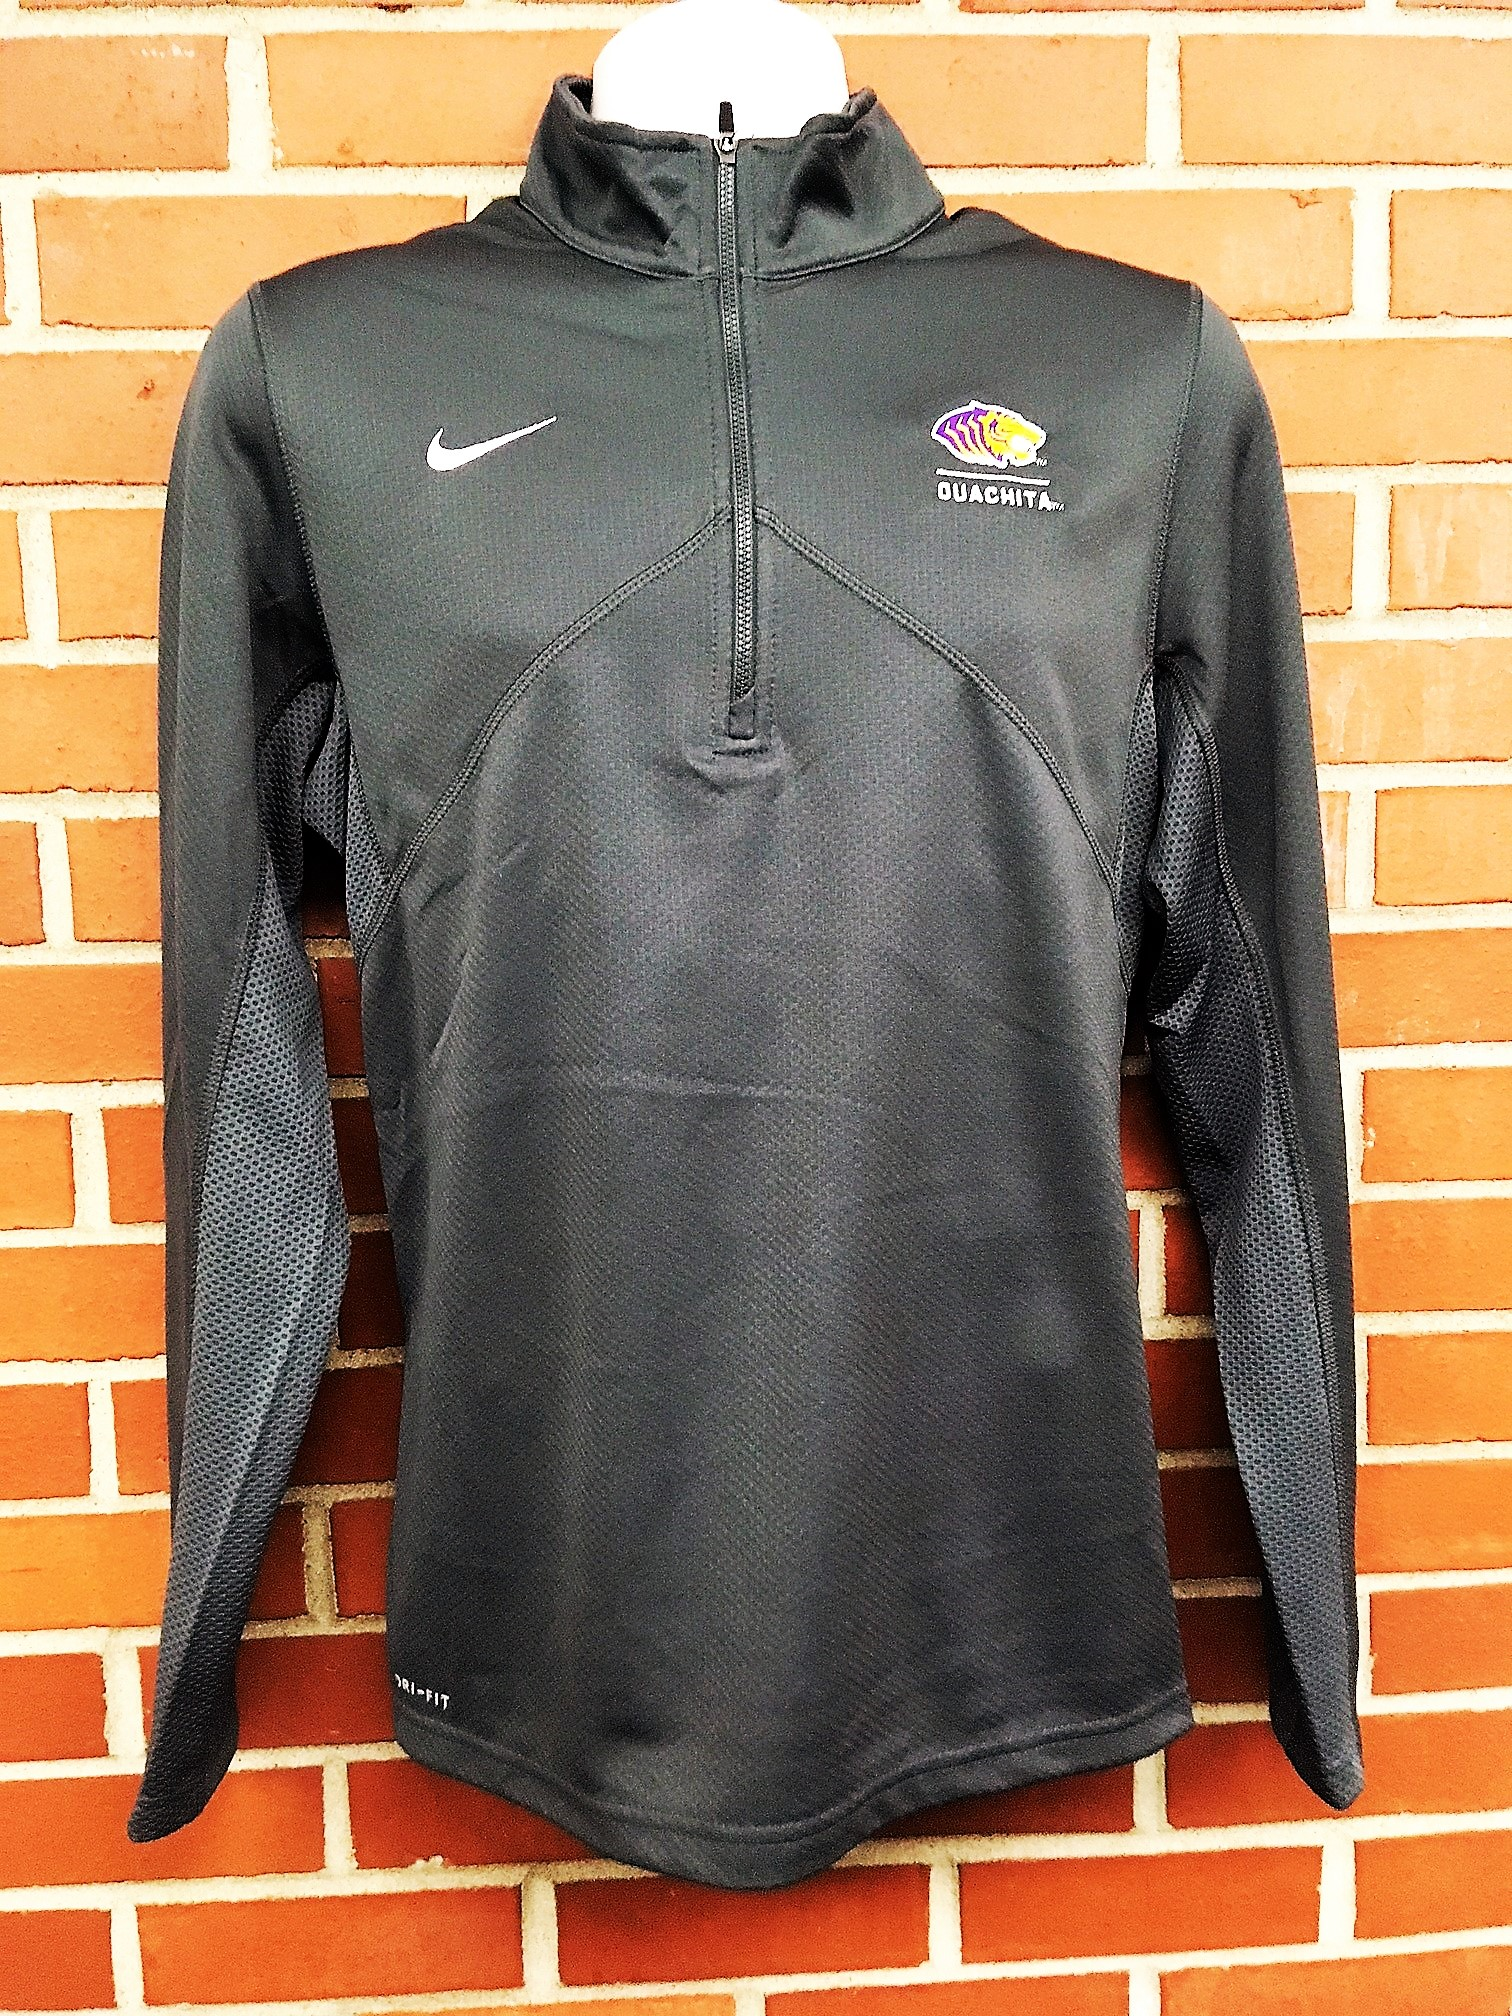 OUACHITA 1/4 ZIP TRAINING PULLOVER